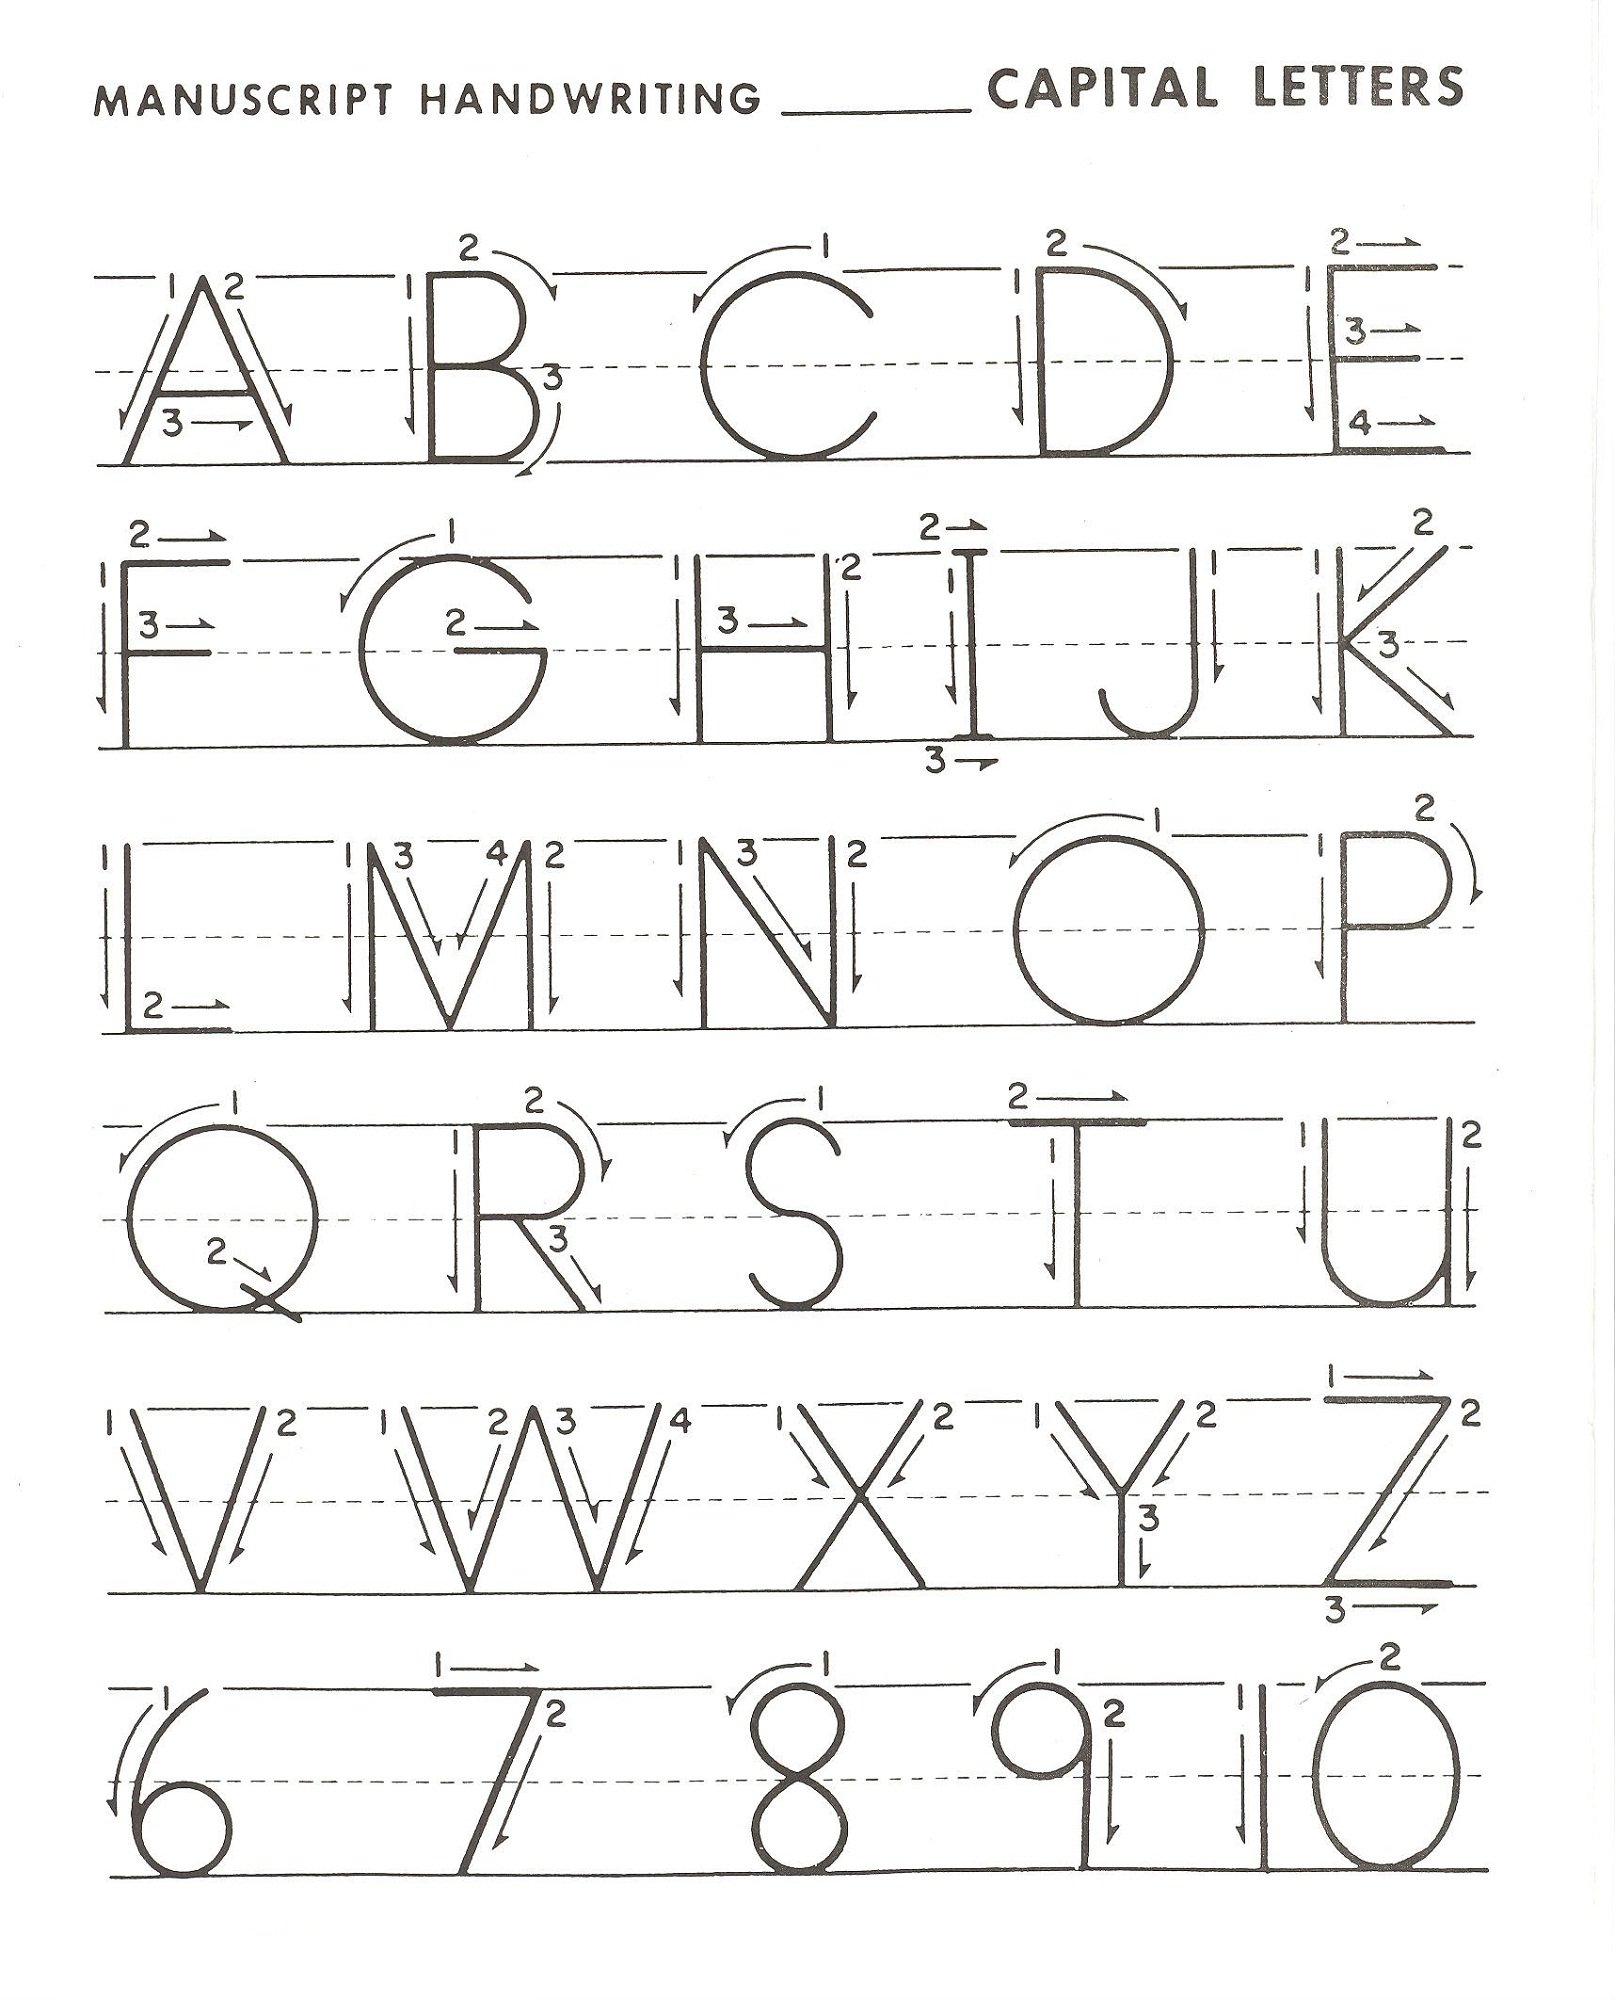 Capital Letters Worksheets The Best Worksheets Image Collection